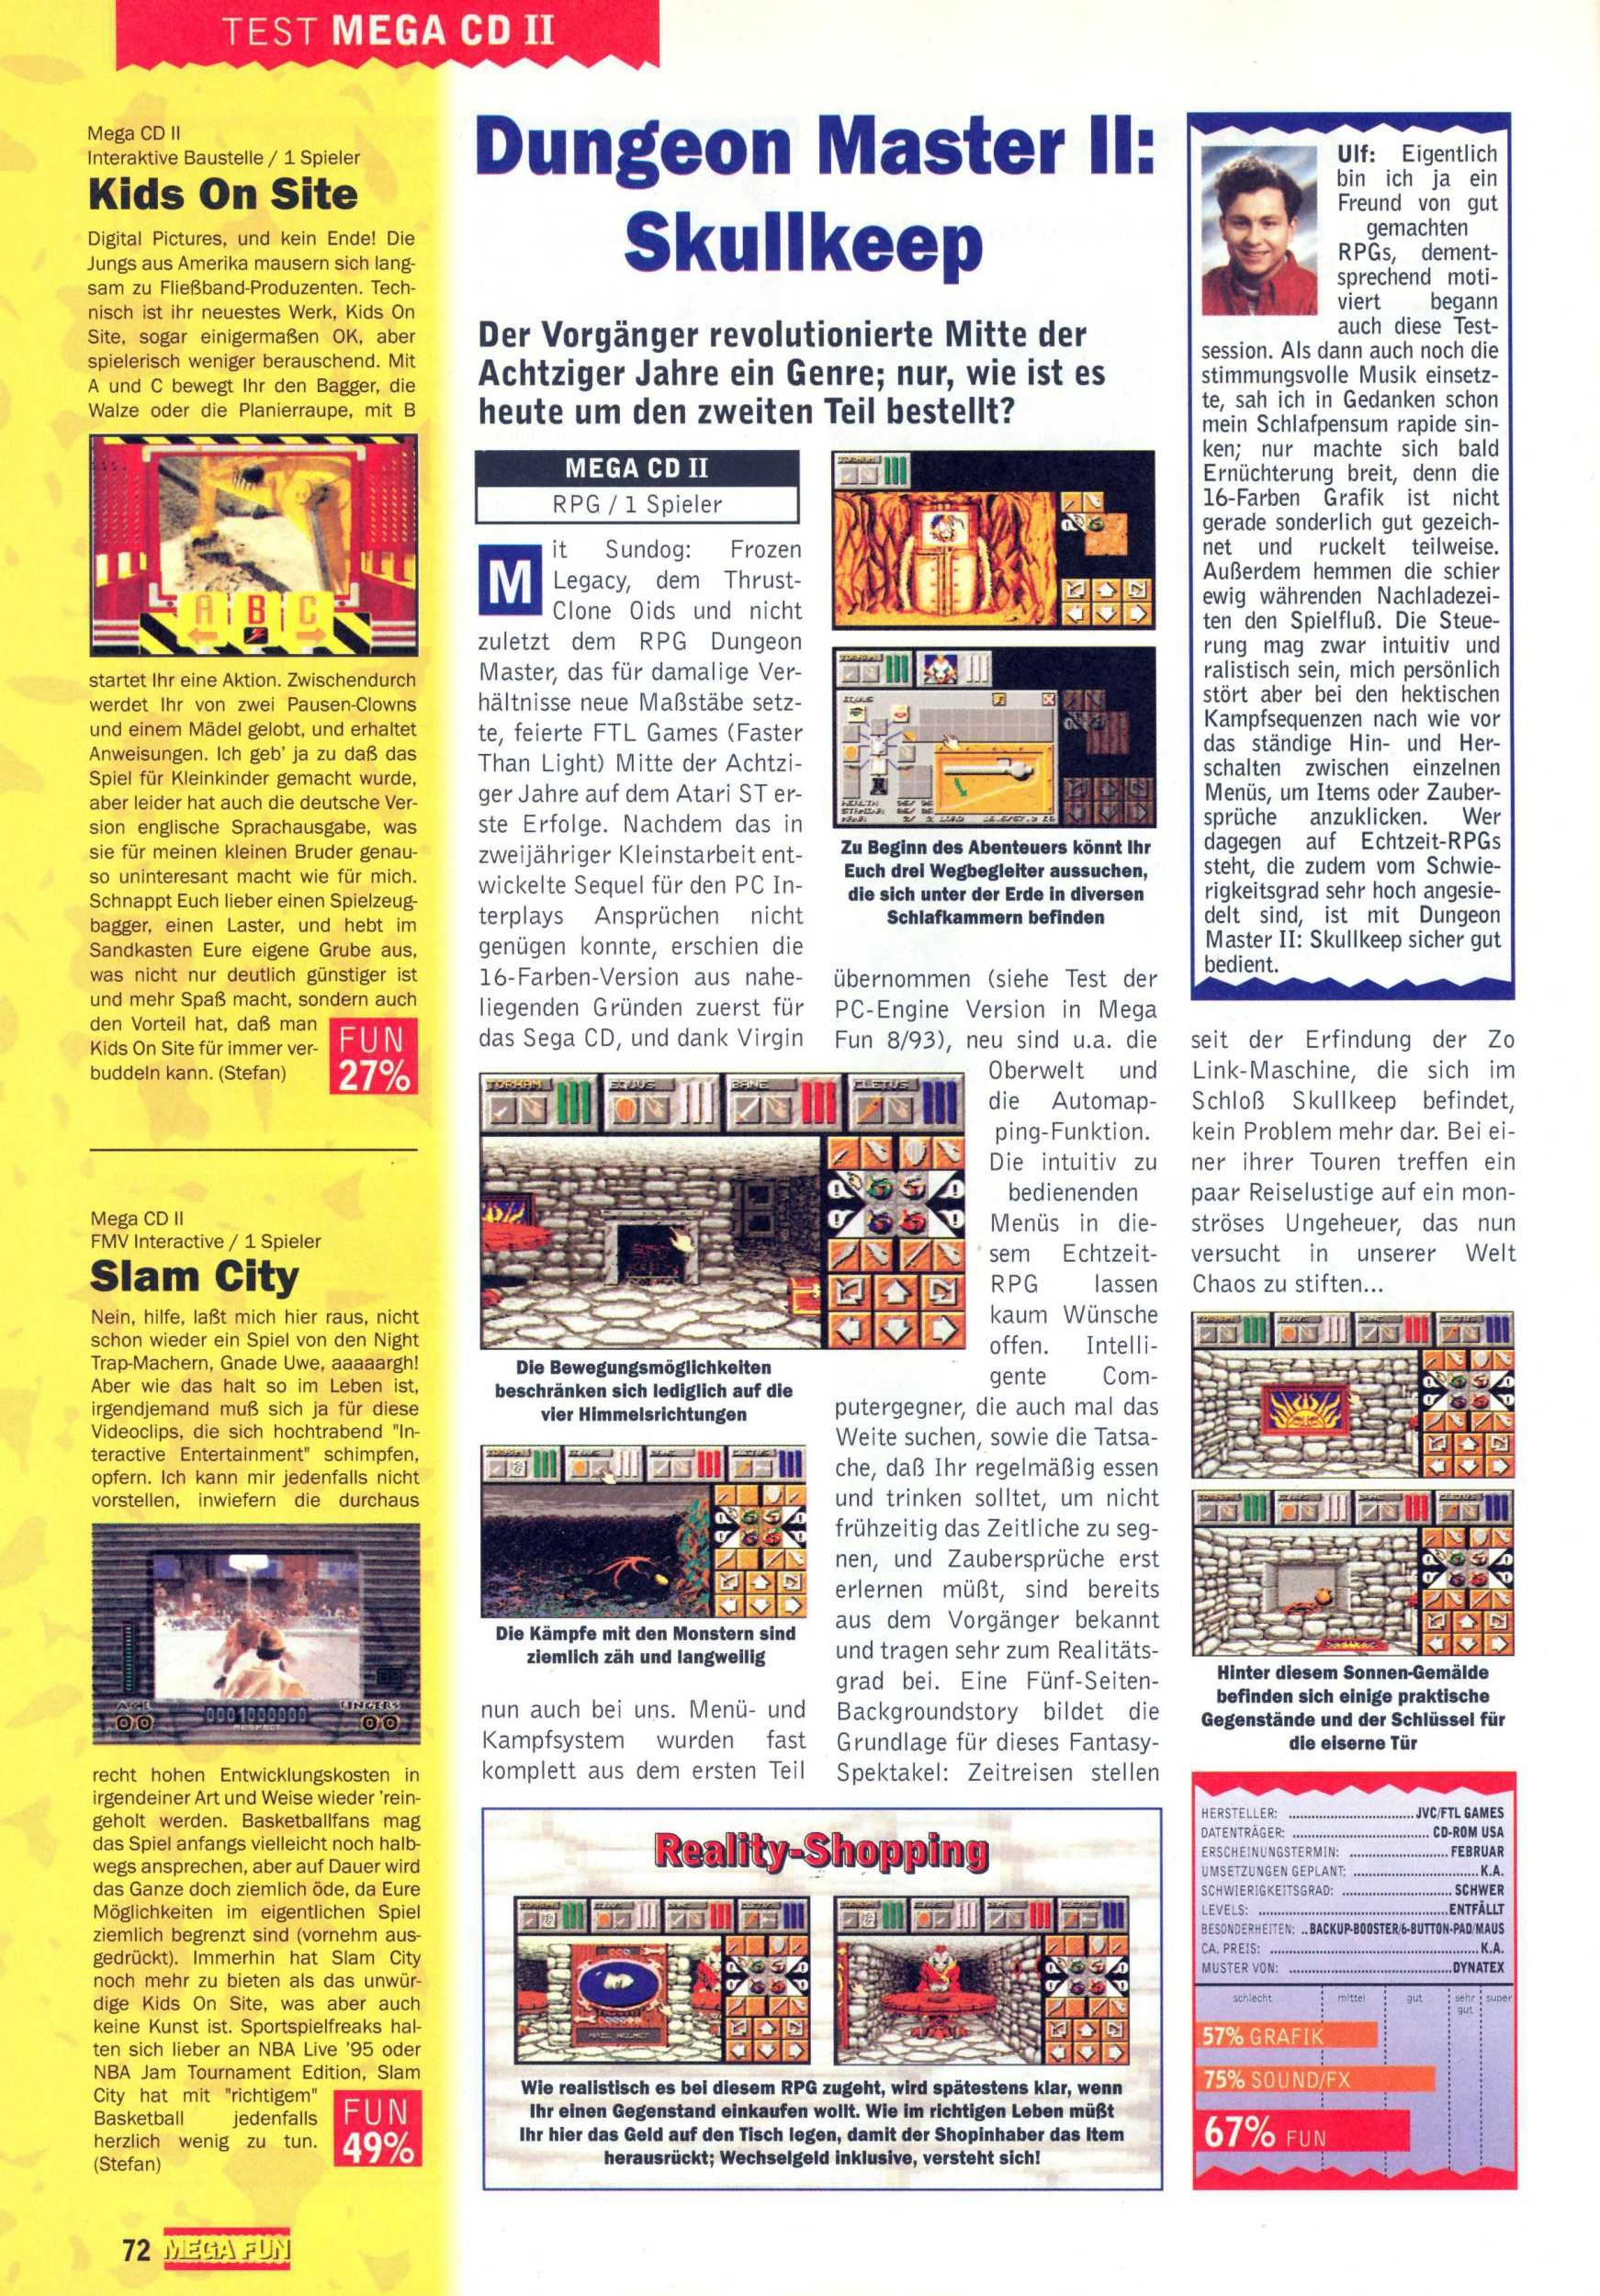 Dungeon Master II for Mega CD Review published in German magazine 'Mega Fun', March 1995, Page 72